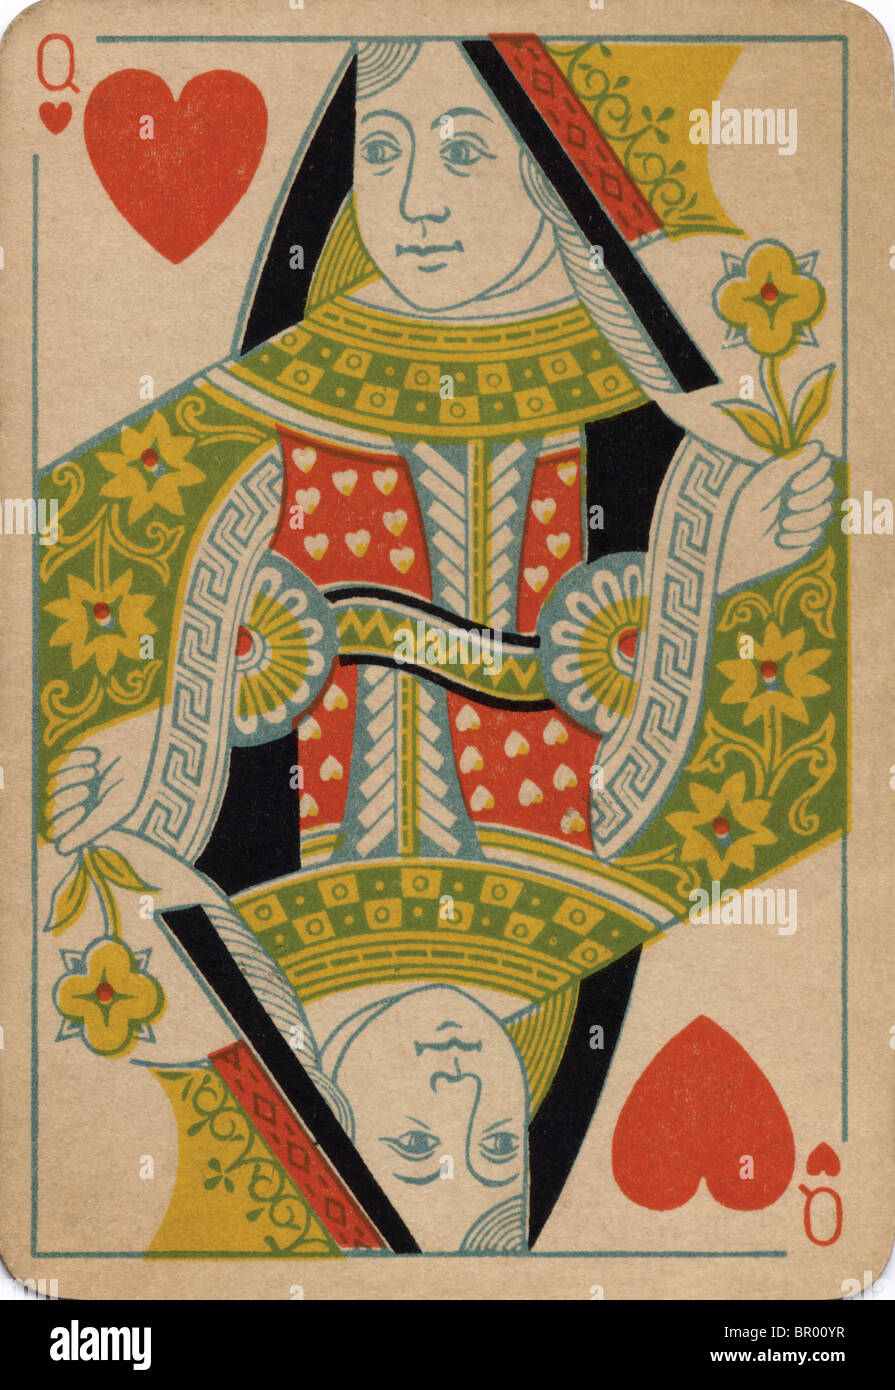 Reine de Coeur vintage playing card Photo Stock